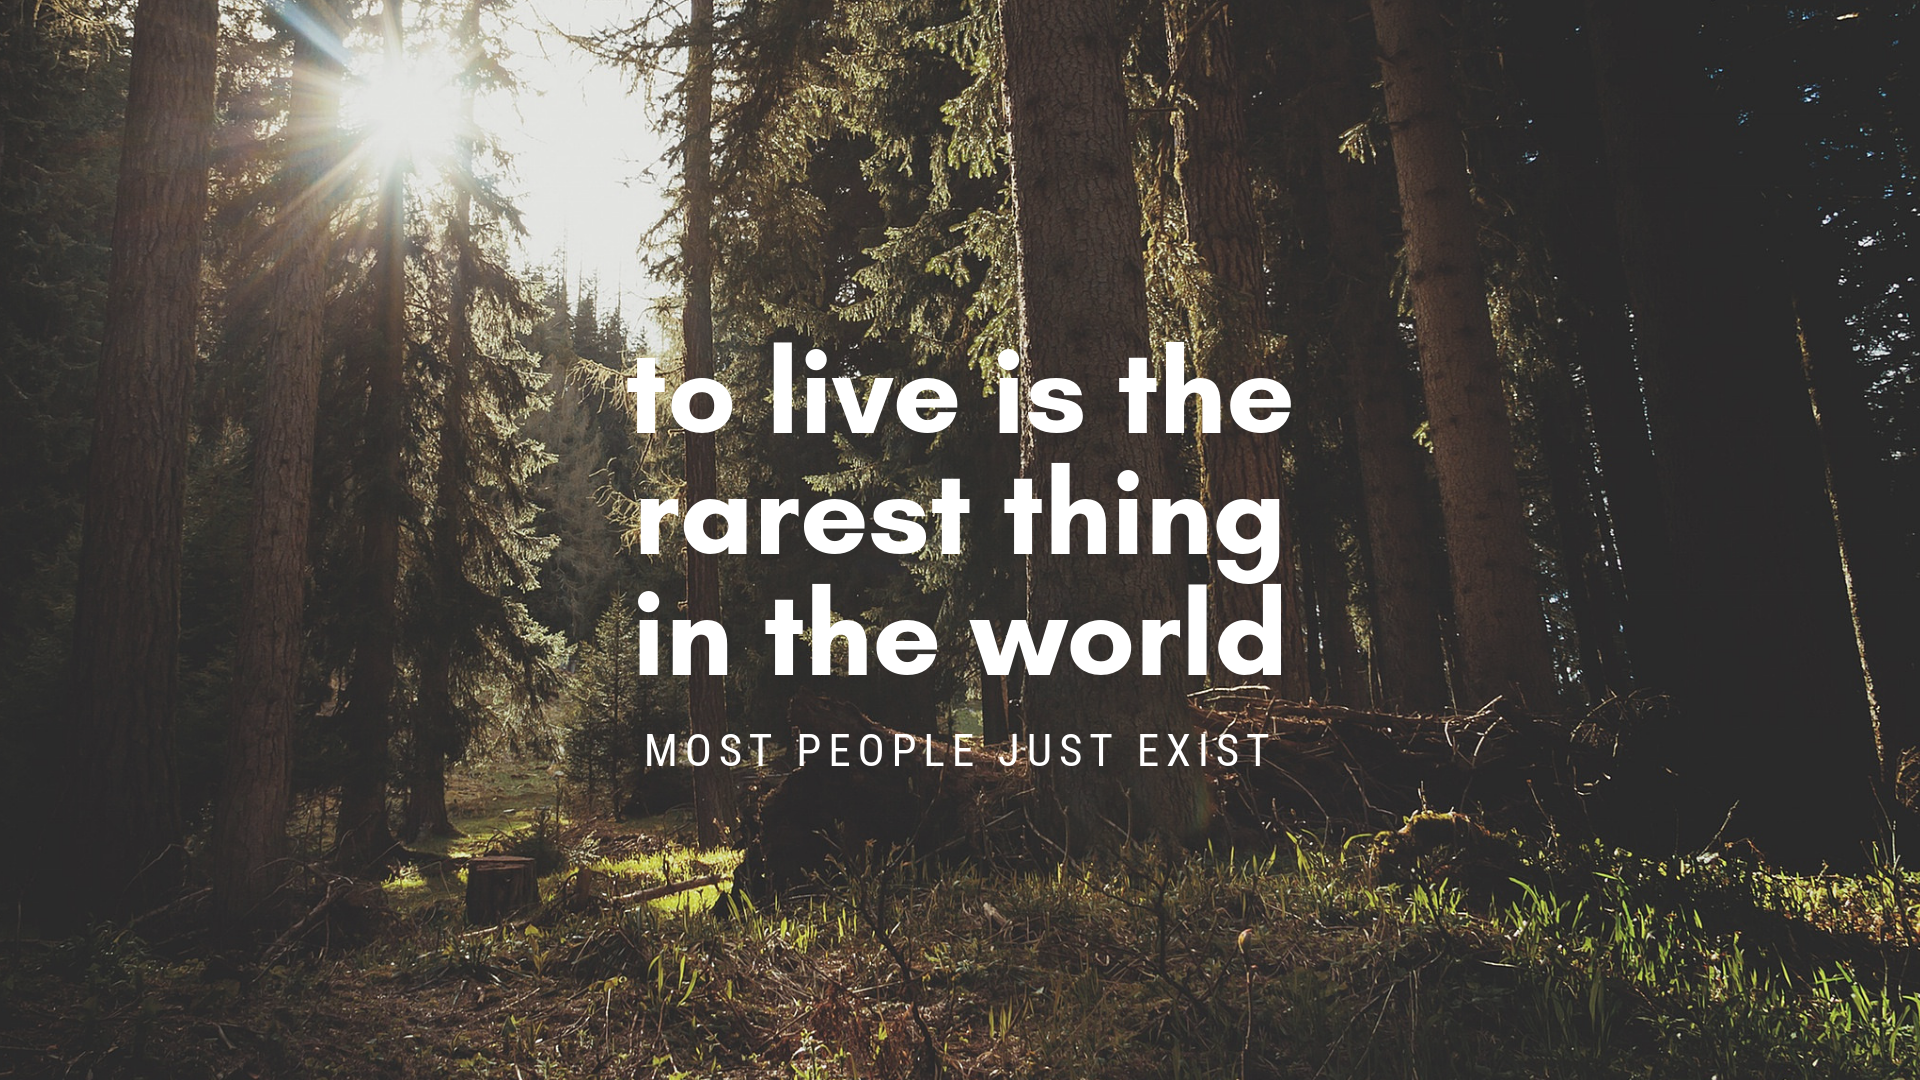 Nature Quotes About Beauties and Love of Nature 3